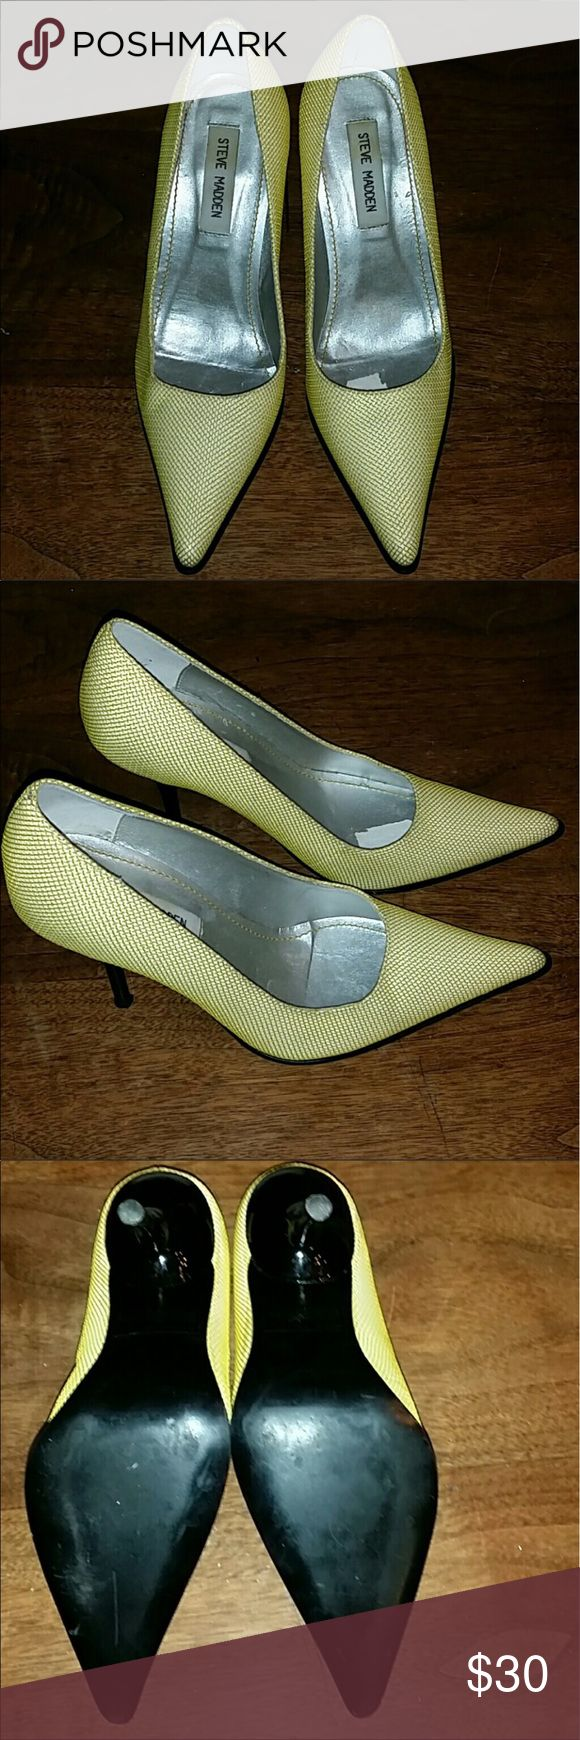 """Steve Madden High heels Yellow 4"""" heels. Worn once! Looks so cute with jeans and a top, they're just a tad too big for me Steve Madden Shoes Heels"""